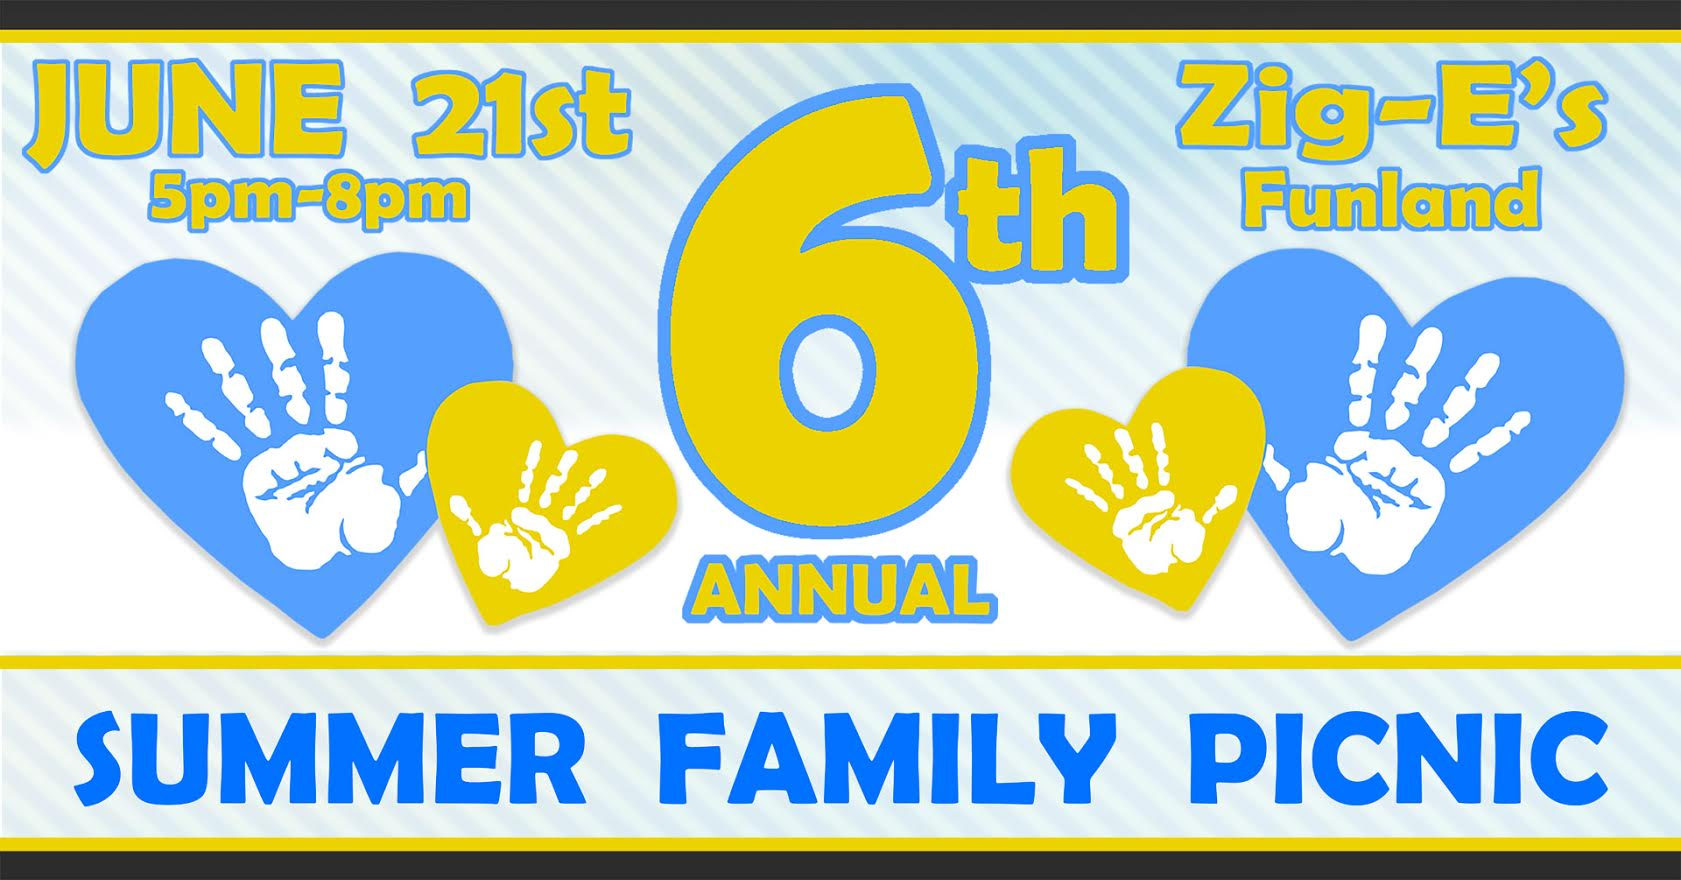 MEMBERS: RAIN DATE ONLY: DSA 6th Annual Summer Family Picnic @ Zig-E's Funland